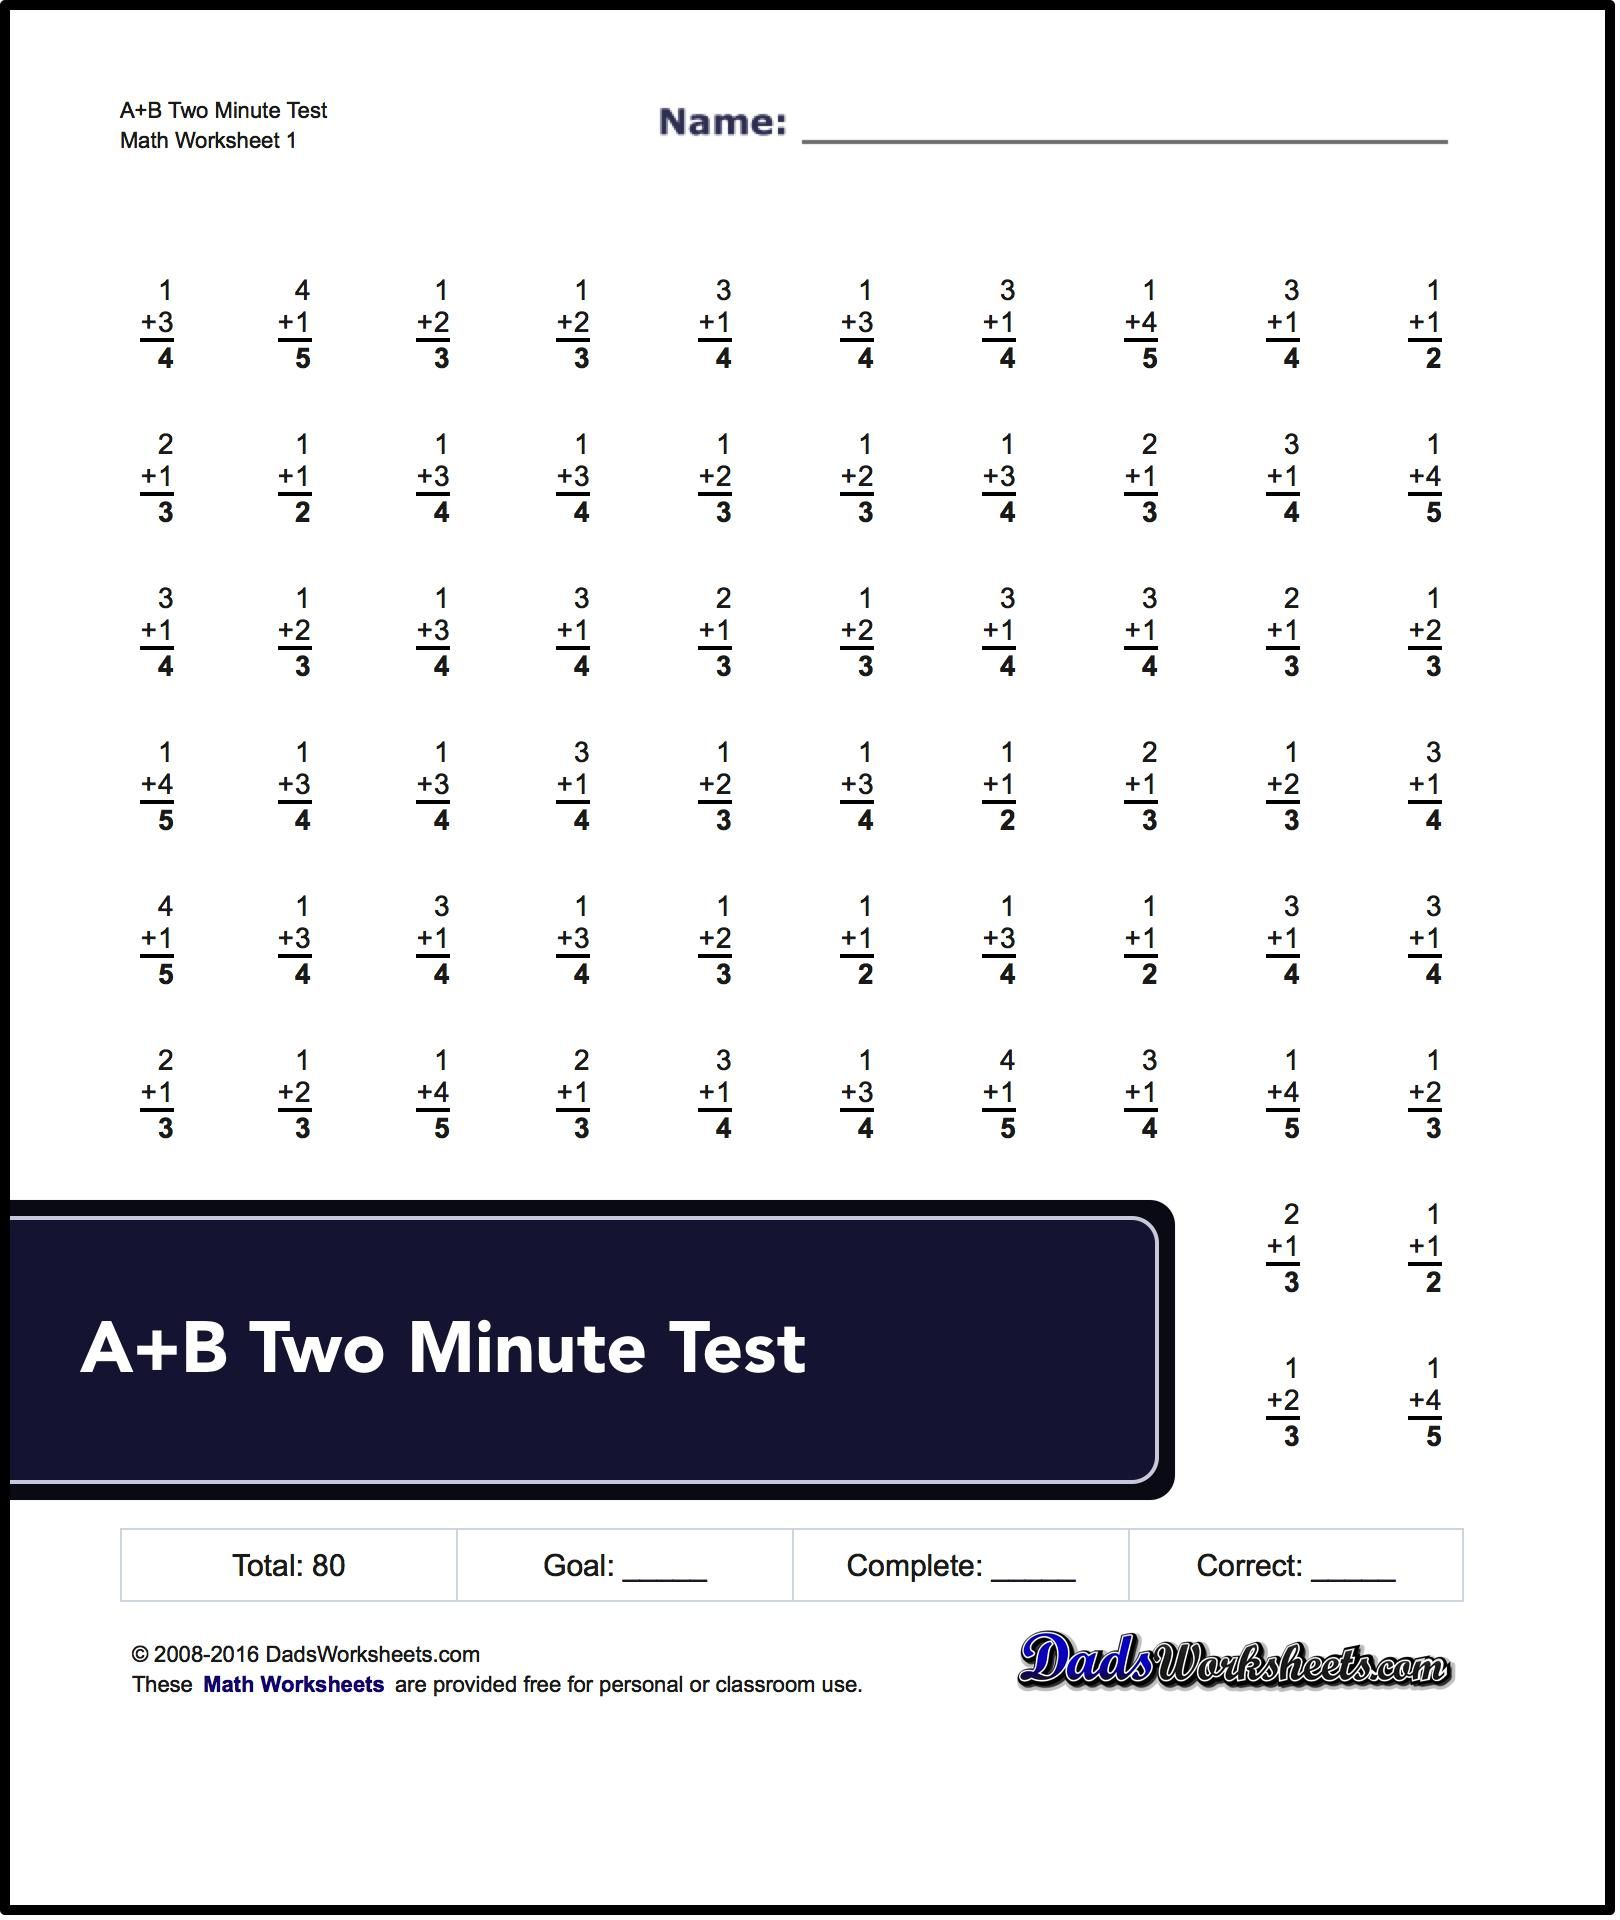 Addition Worksheets Two Minute Tests Math Worksheets Subtraction Worksheets Math